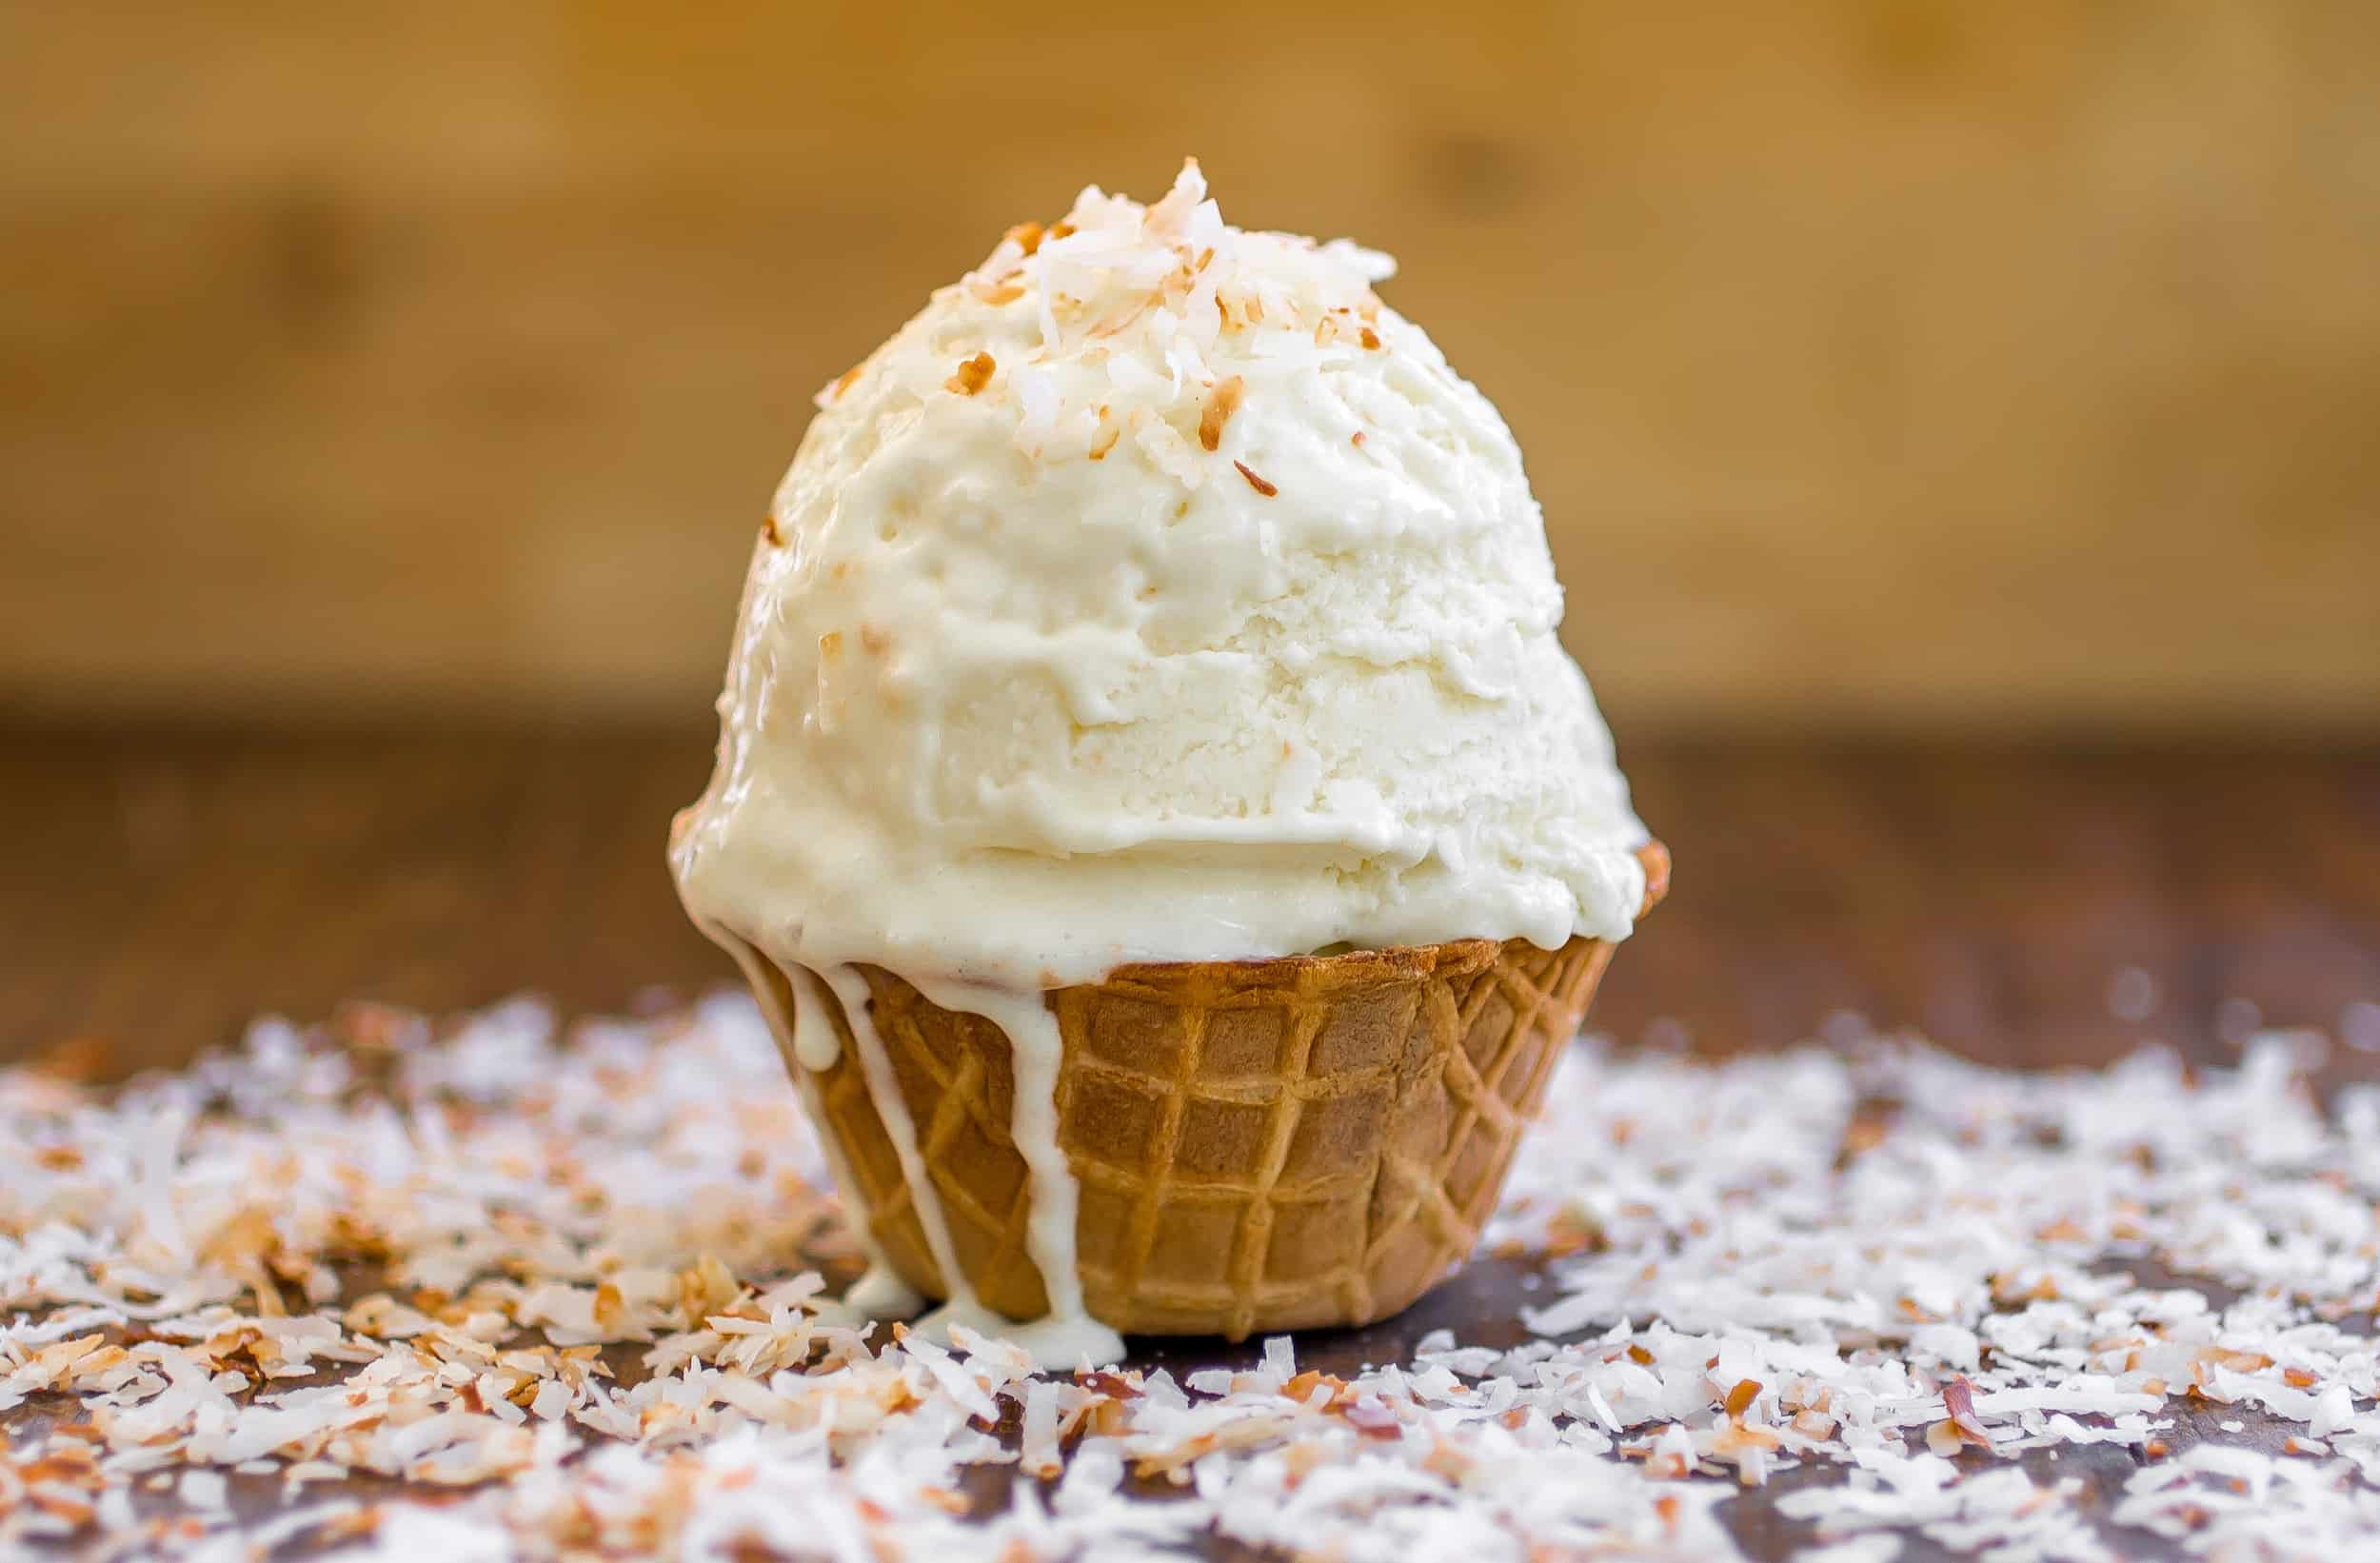 Lemon Coconut Ice Cream - Super fresh and creamy lemon coconut ice cream made completely from scratch!